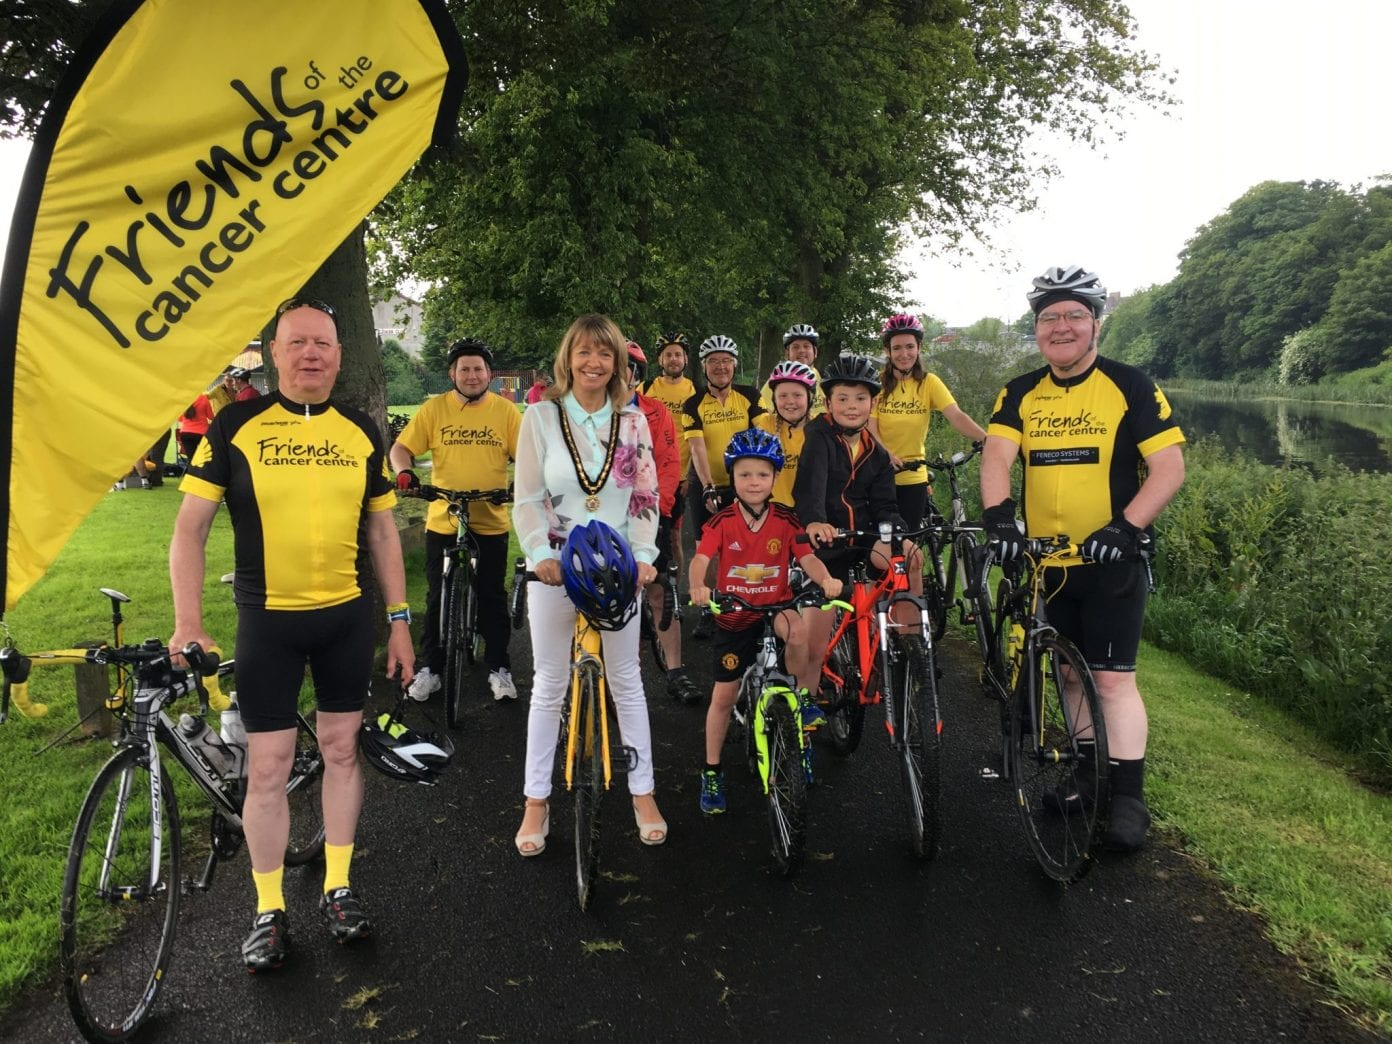 Margaret Tinsley Friends of Cancer cycle